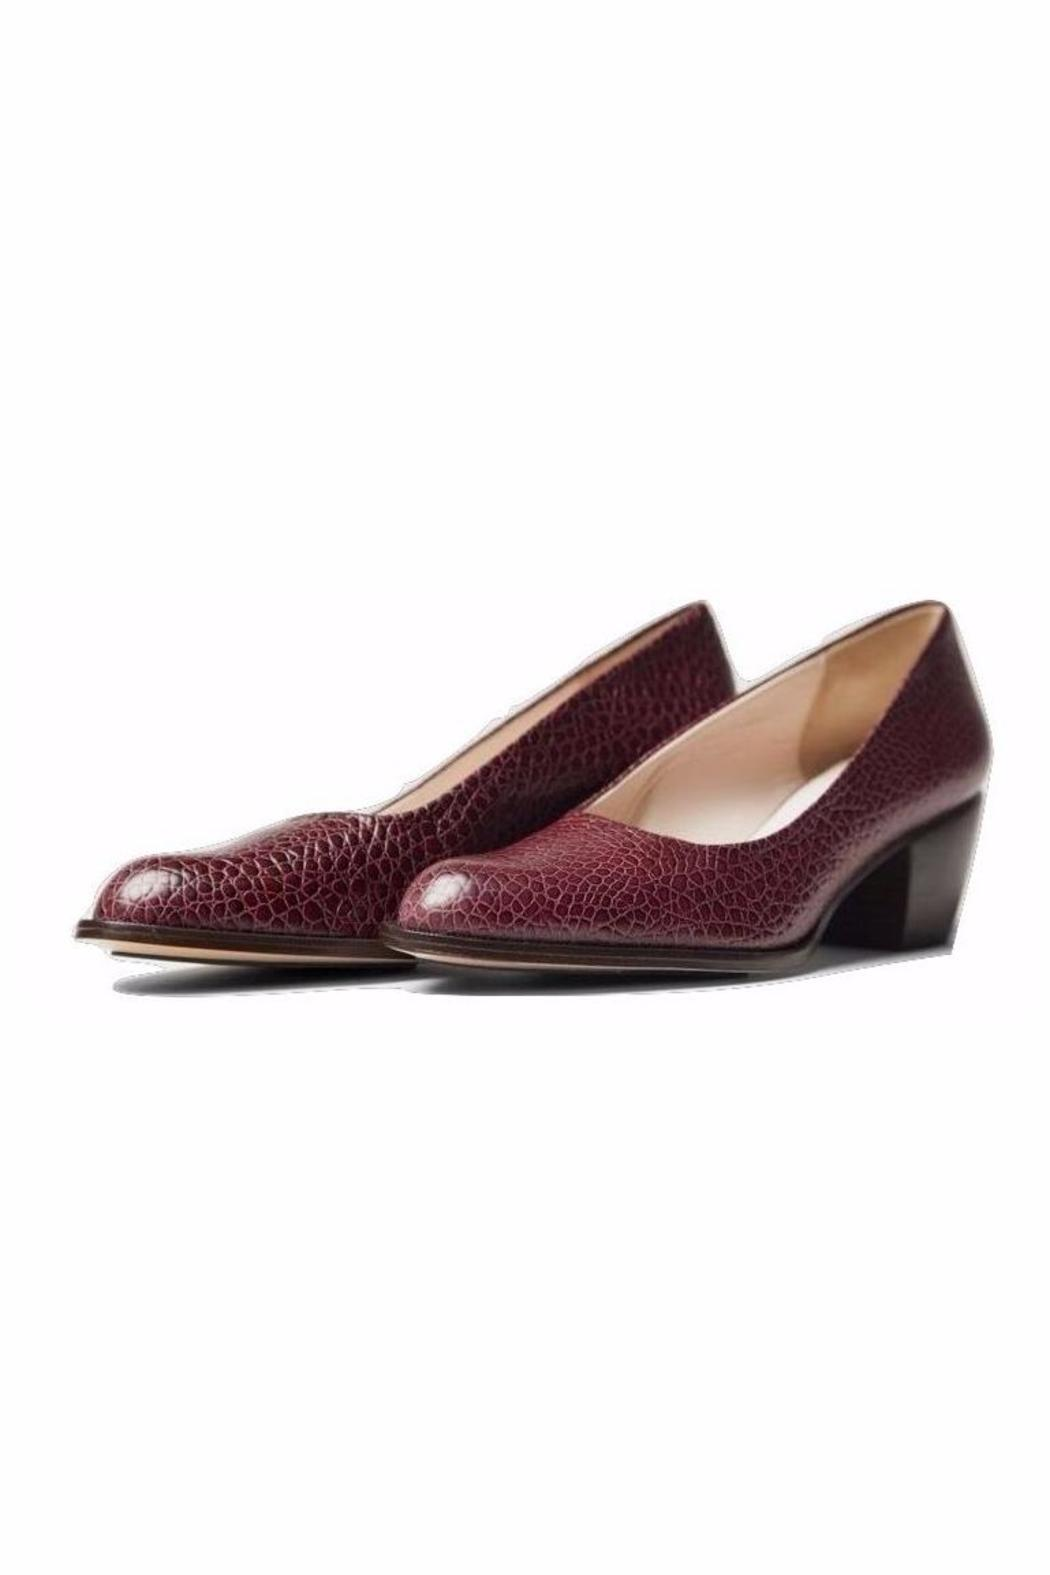 5yMedio Luisa Embossed Leather Pump - Front Full Image